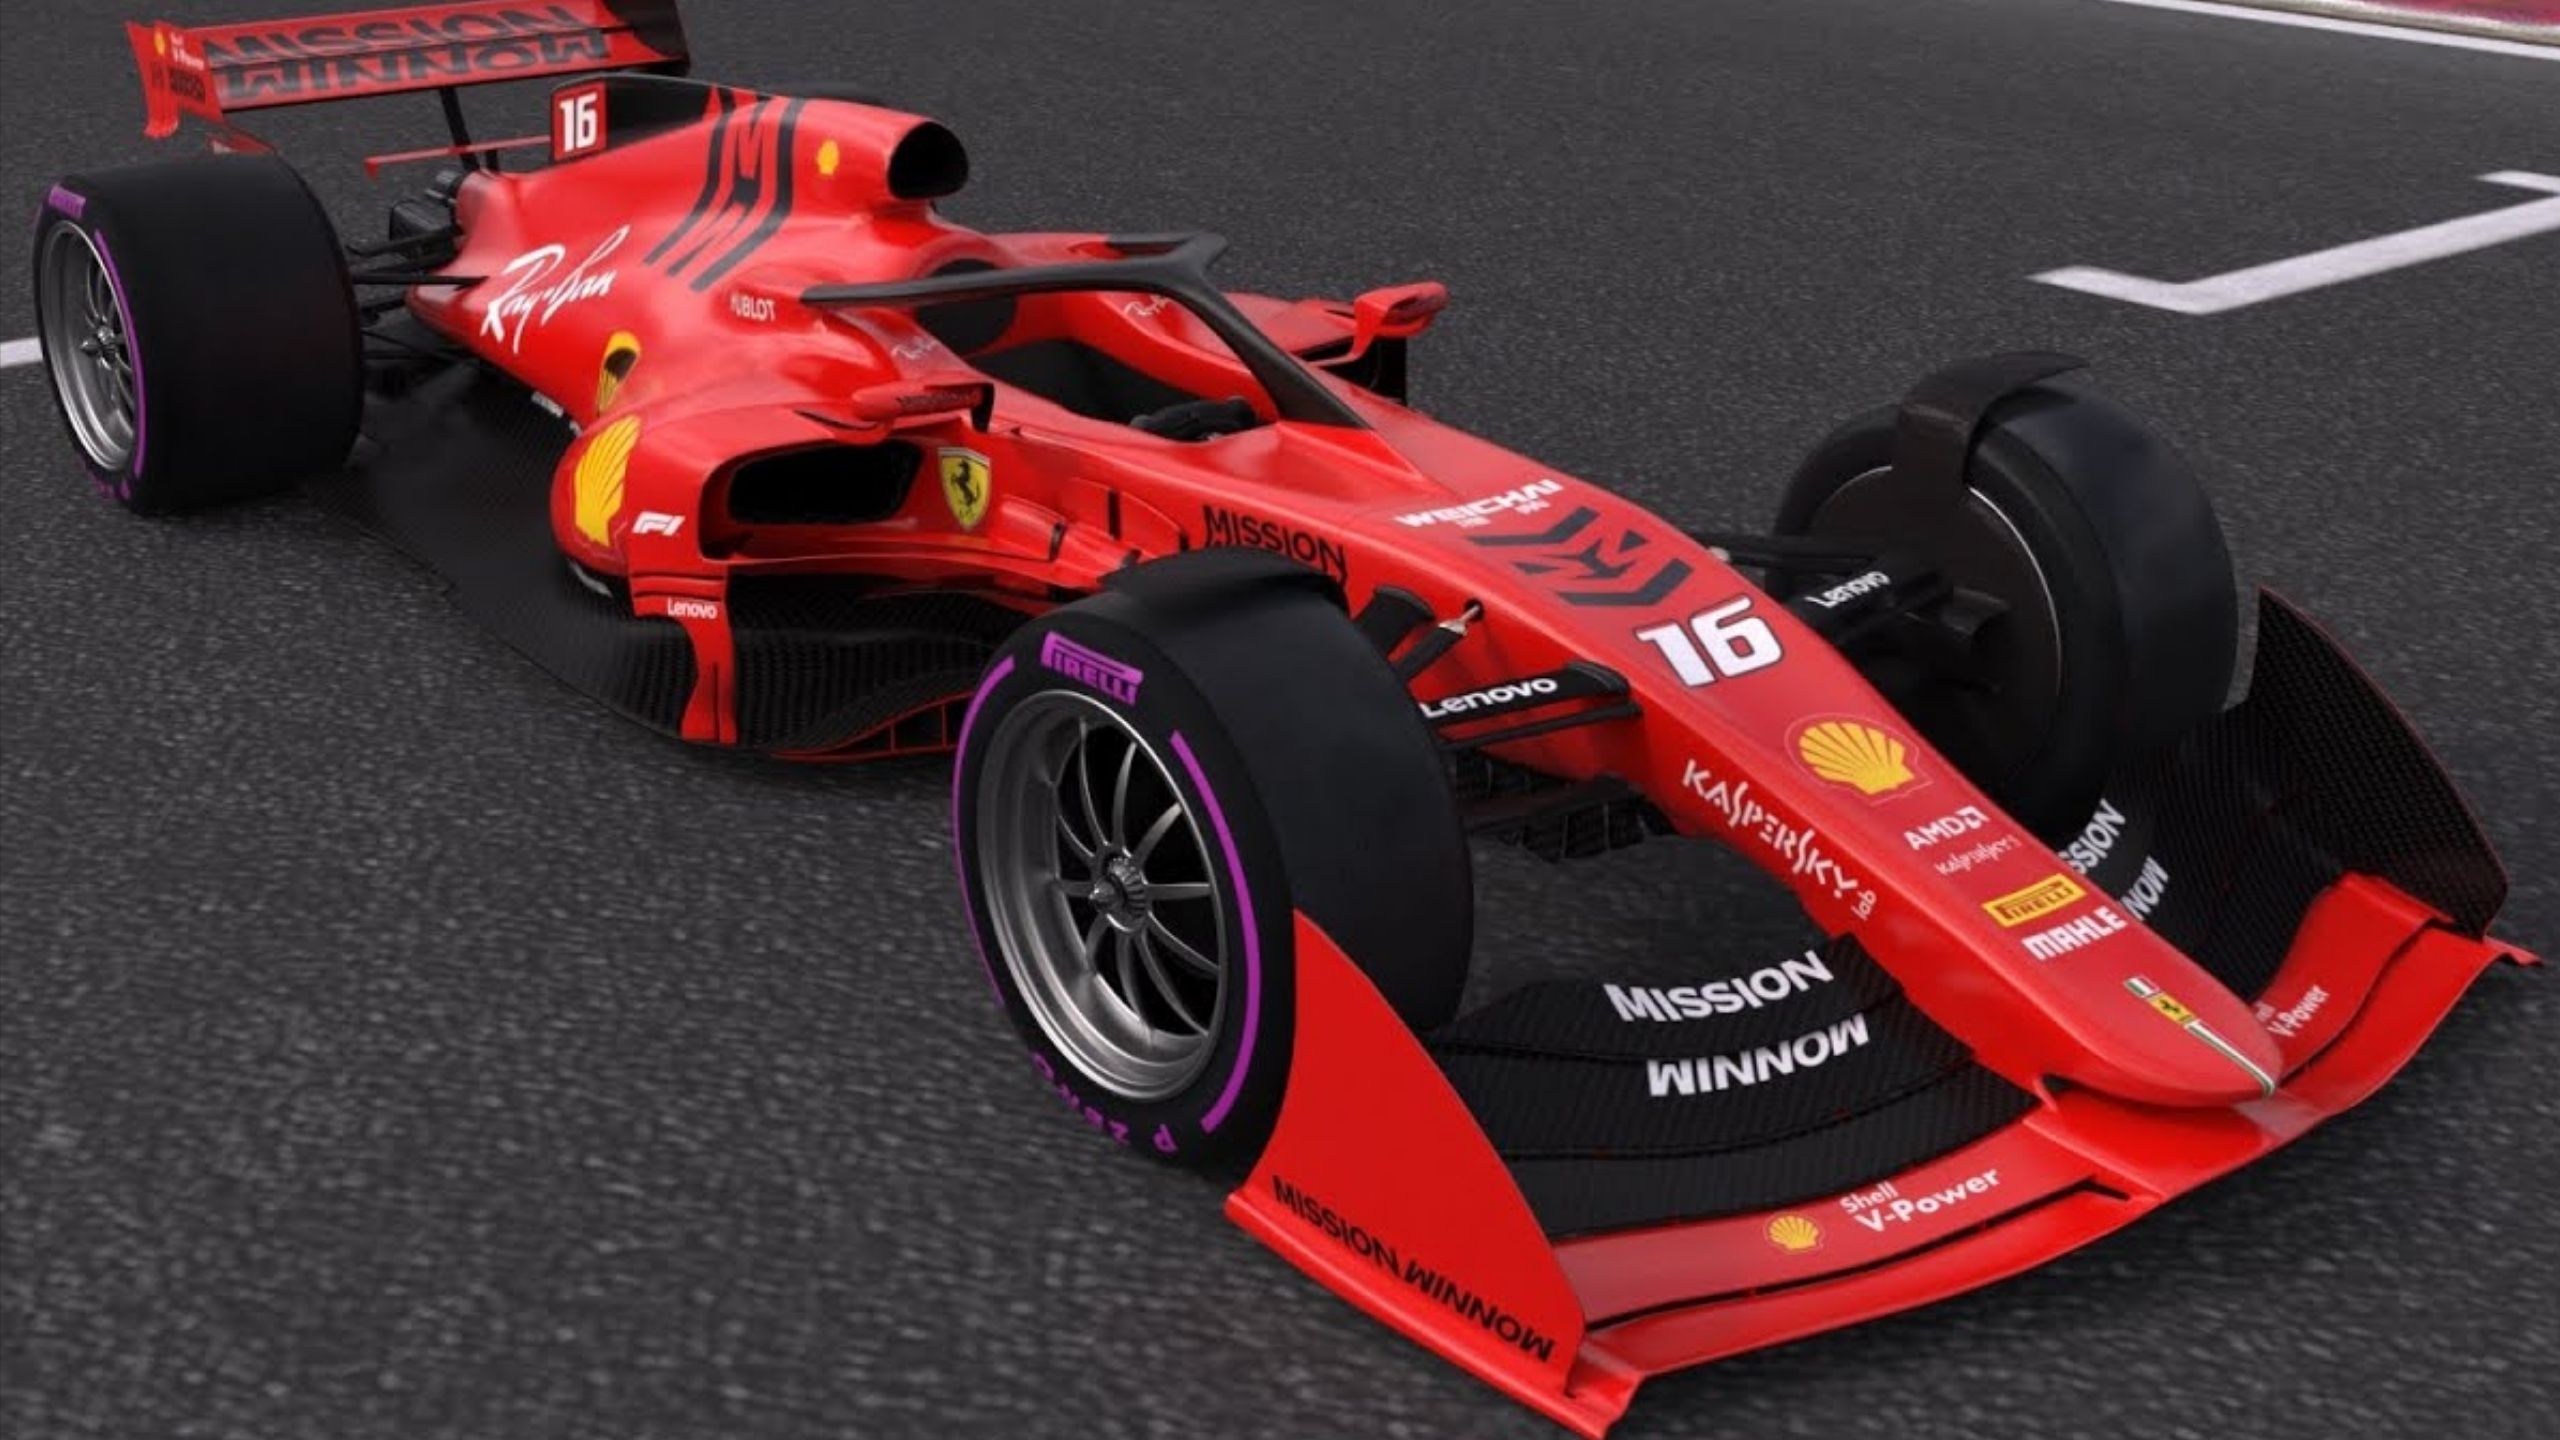 """""""I don't think you can compare the situations"""" - Mattia Binotto refuses to suggest Ferrari dominance in 2022 like Mercedes in 2014"""